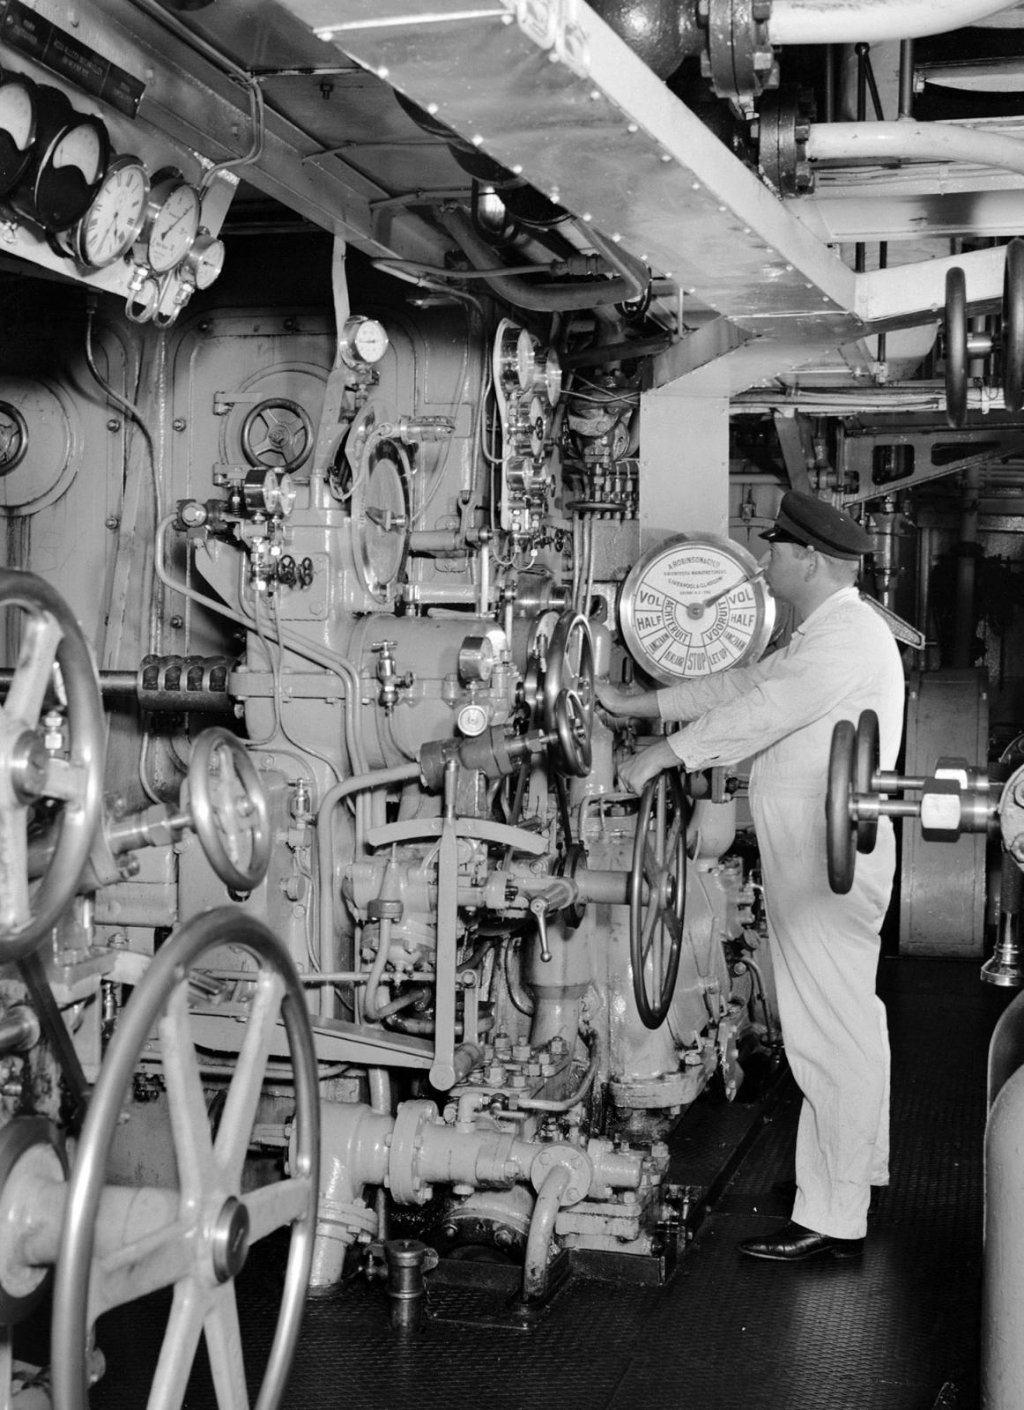 Baloeran_1930engine_room_1935_copy.jpg